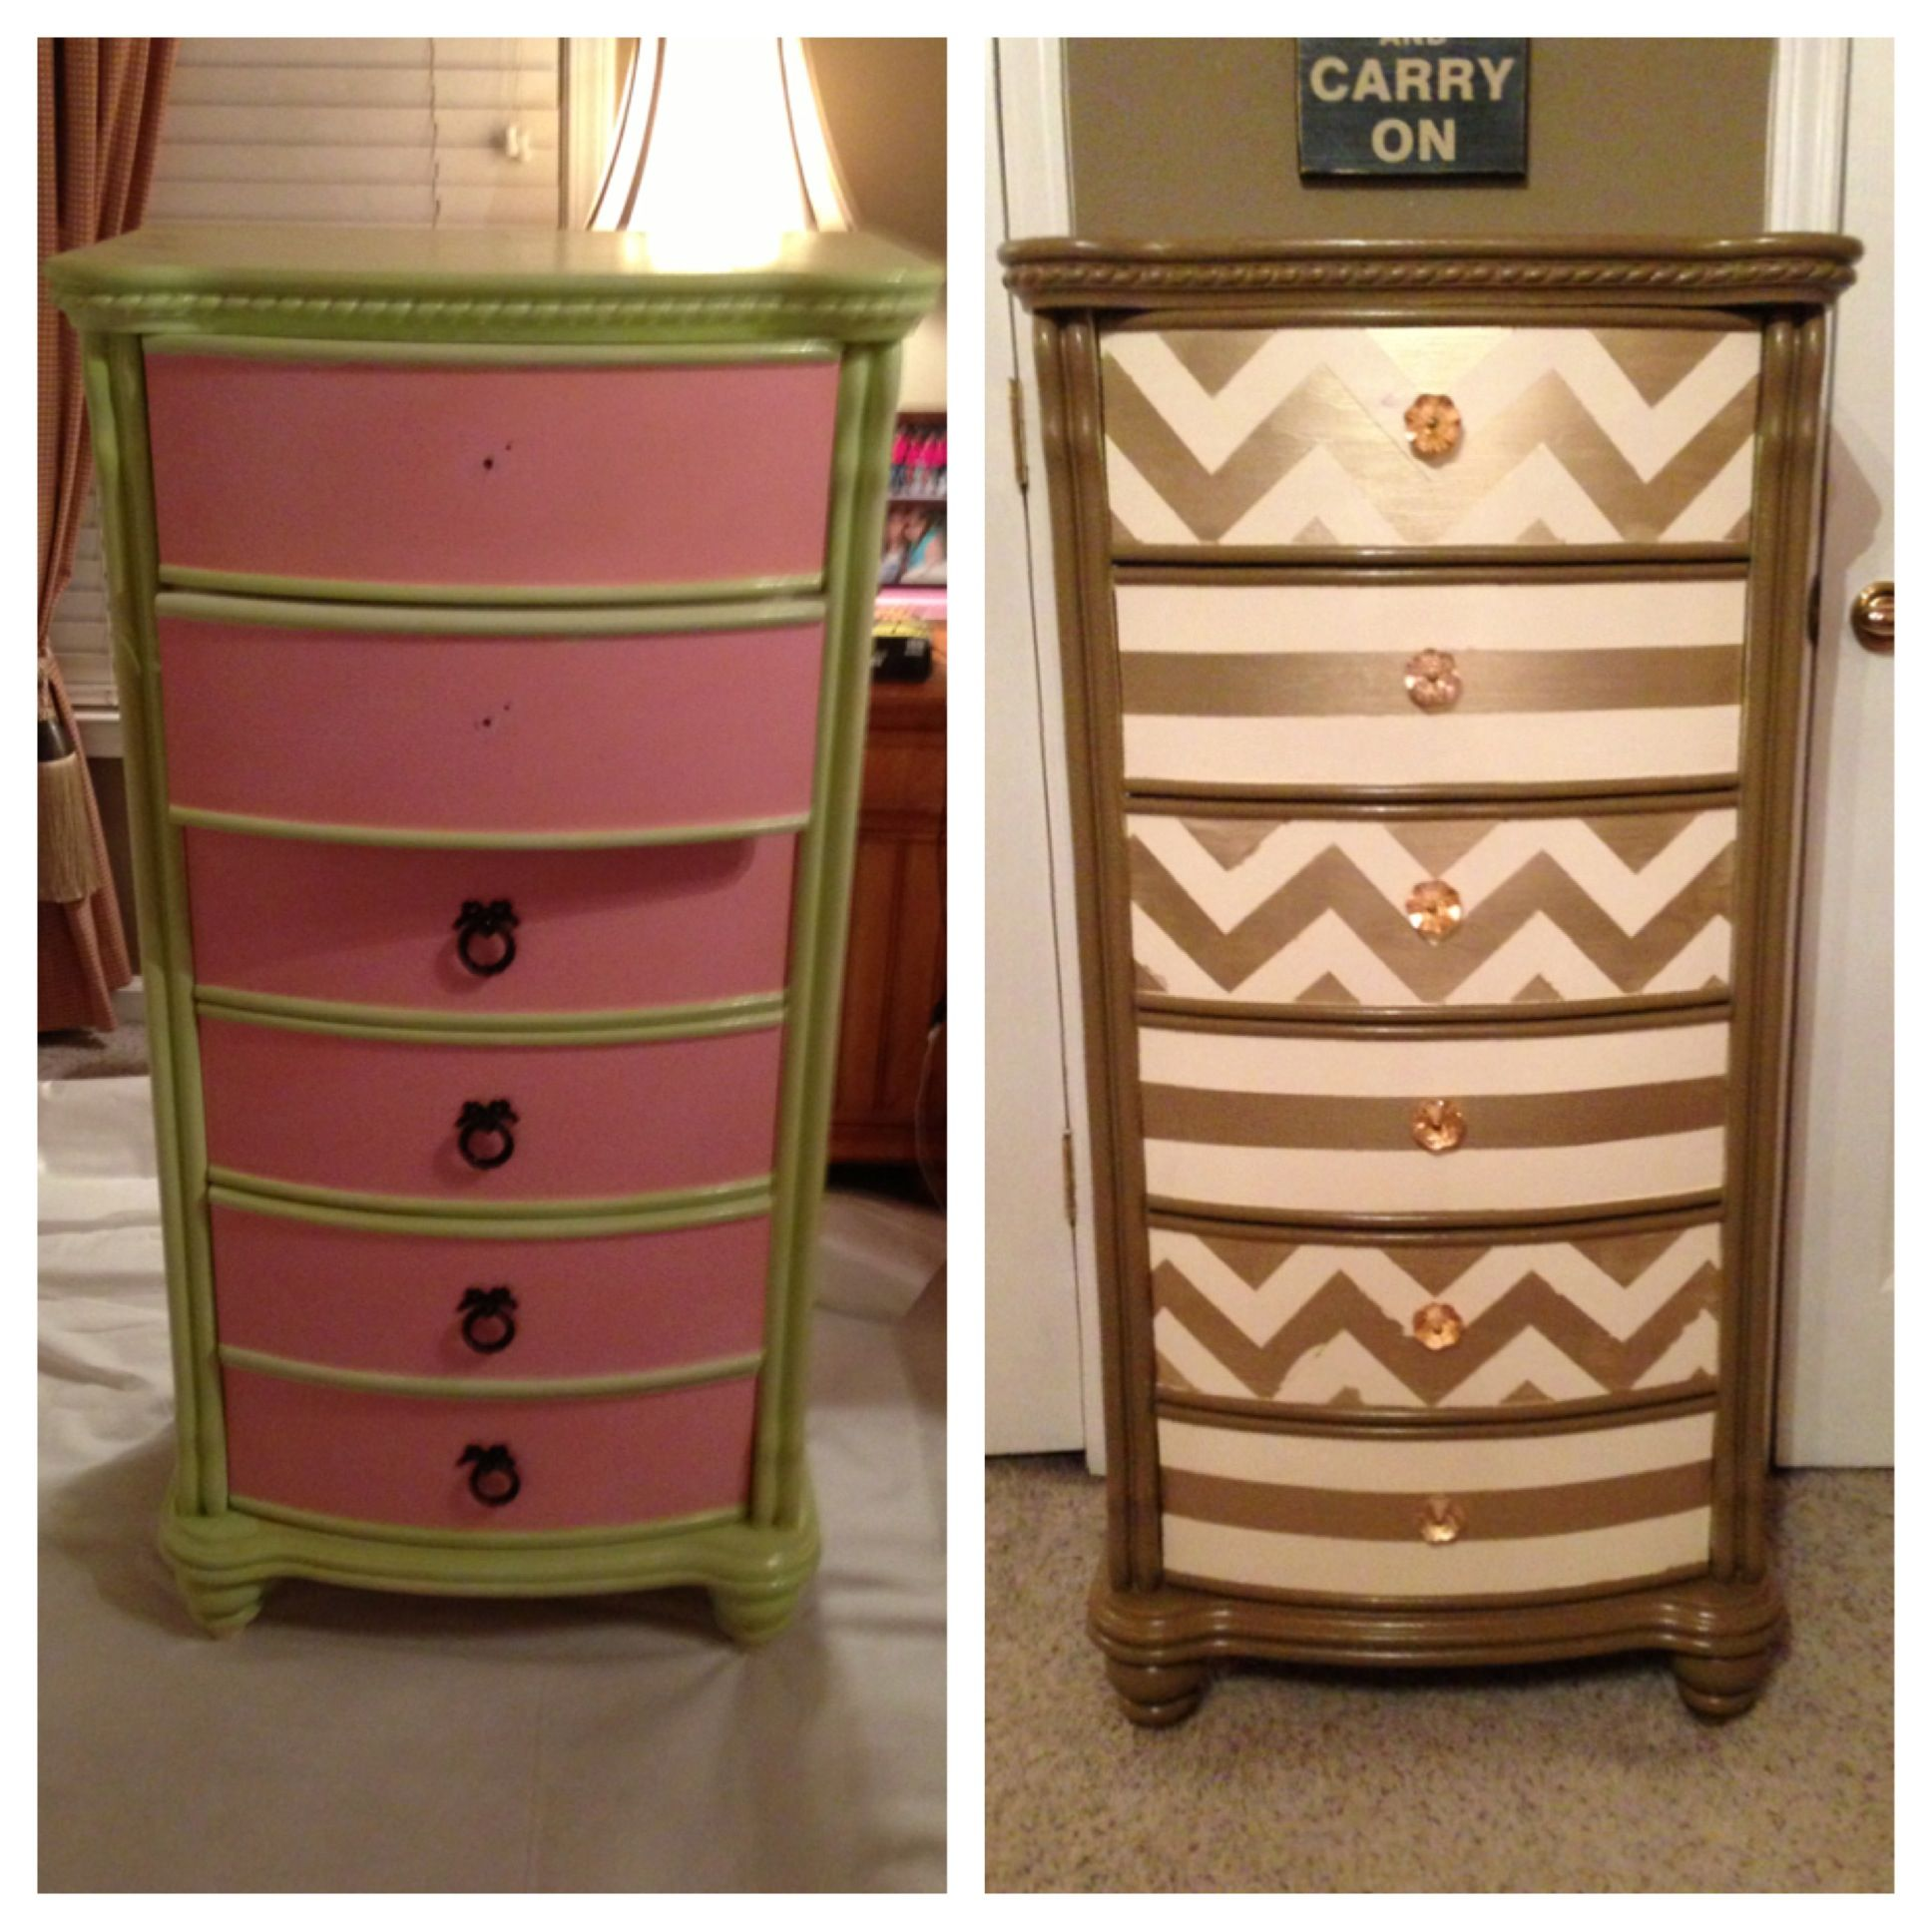 Painted furniture ideas before and after - Distress Painting Apartment Guide Apartment Ideas Painted Dressers Painted Furniture Furniture Ideas House Improvements Bedroom Office Dresser